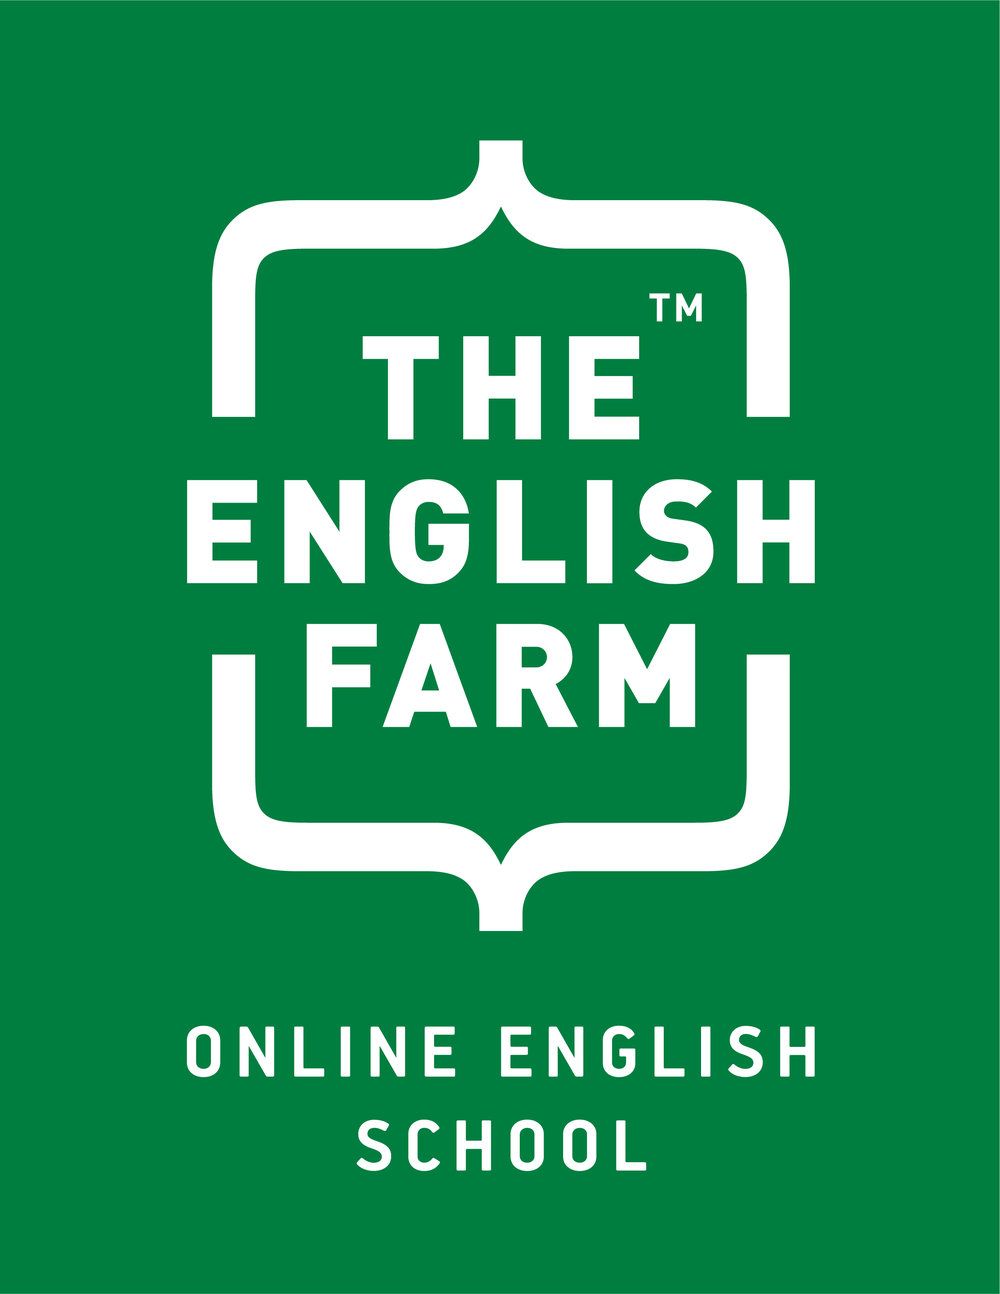 English farm Logo Green.jpg